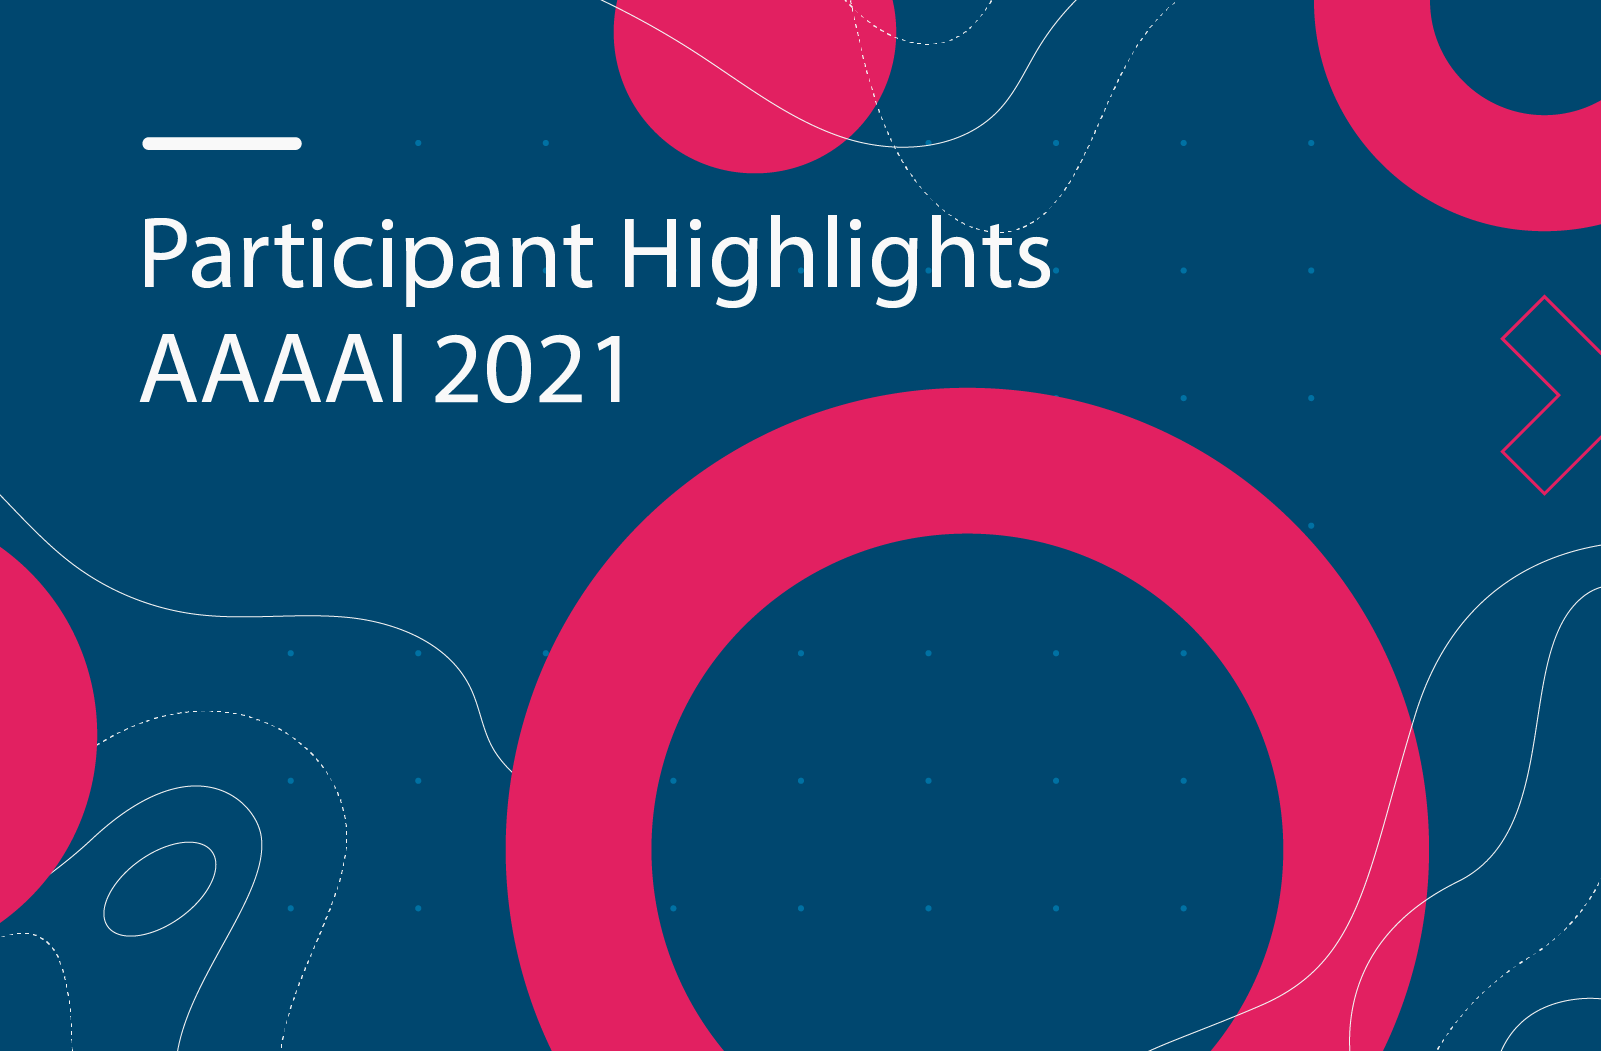 Participant Highlights from AAAAI 2021